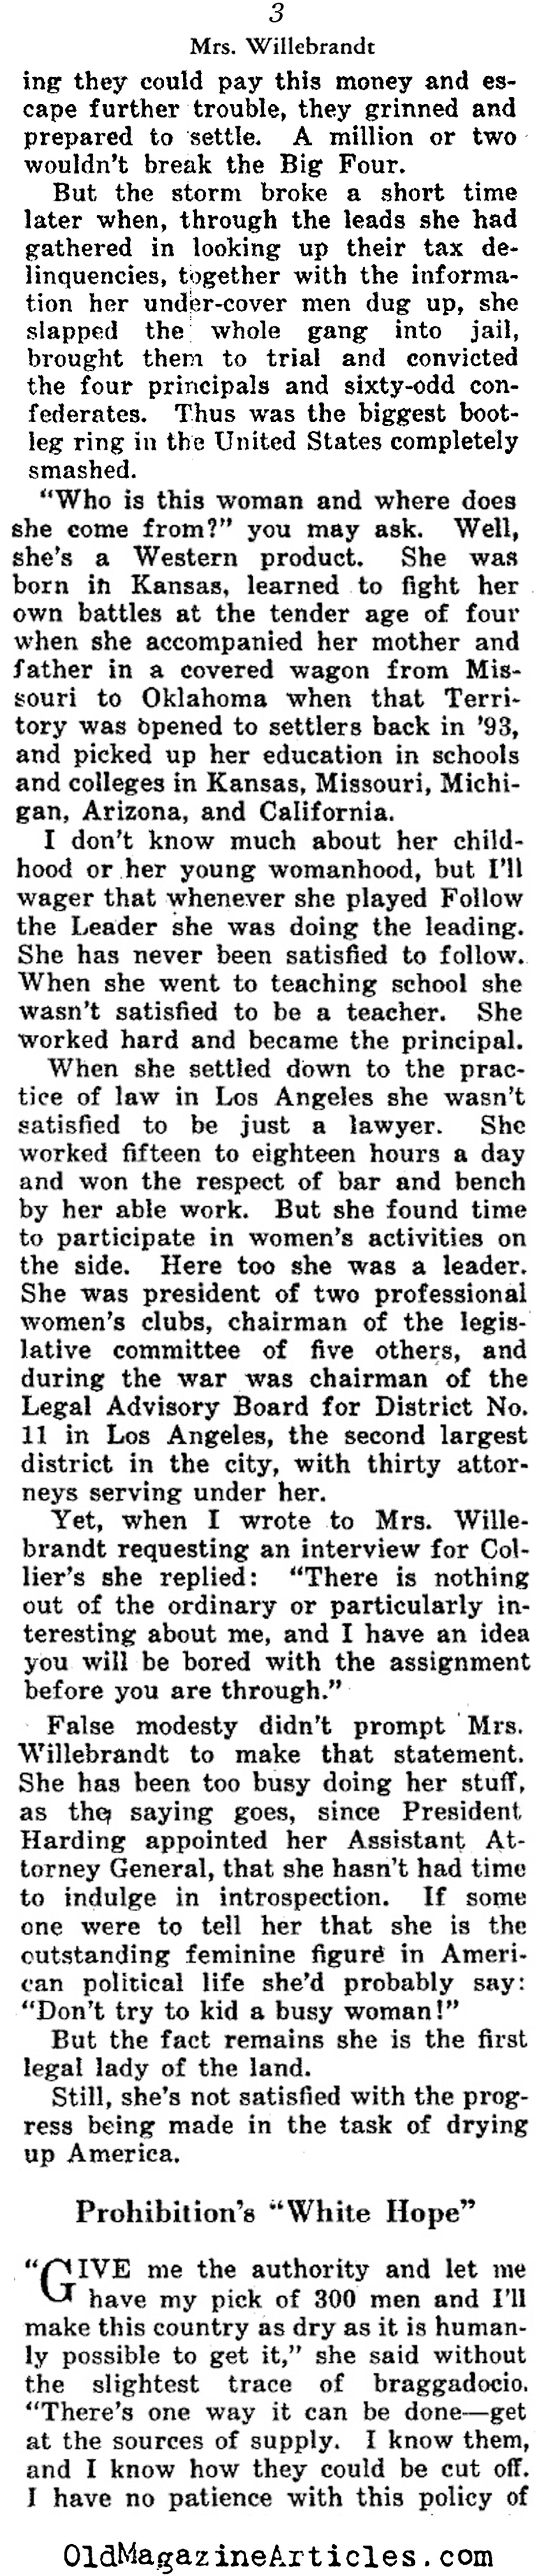 Mabel Walker Willebrandt Takes On Prohibition (Collier's Magazine, 1924)